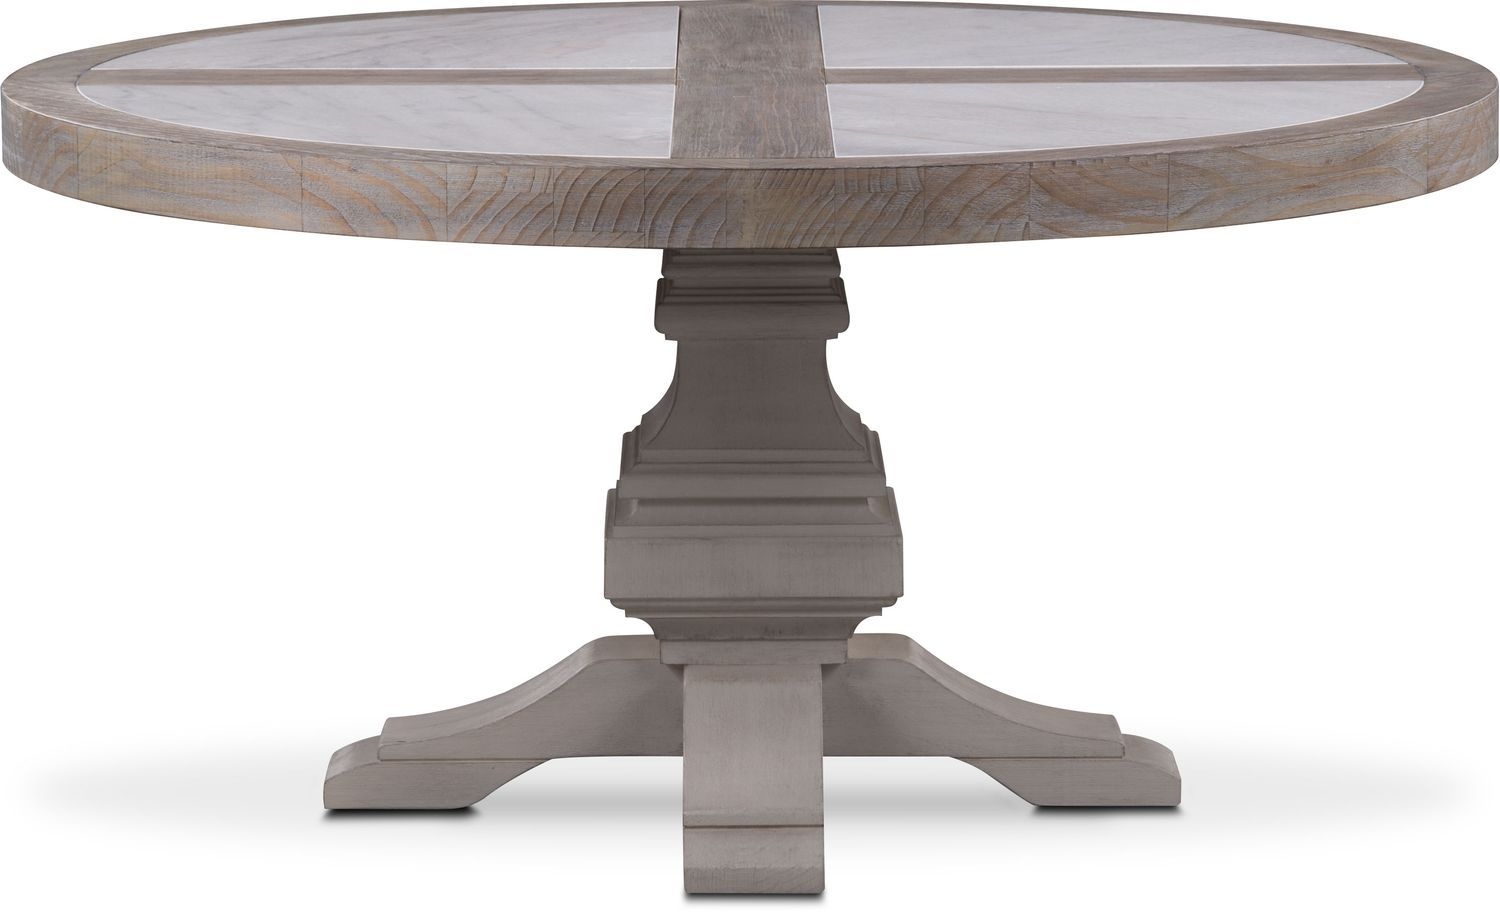 Dining Room Furniture Lancaster Round Marble Top Table Parchment With Water White Base Dining Table Lancaster Dining Table Industrial Dining Table